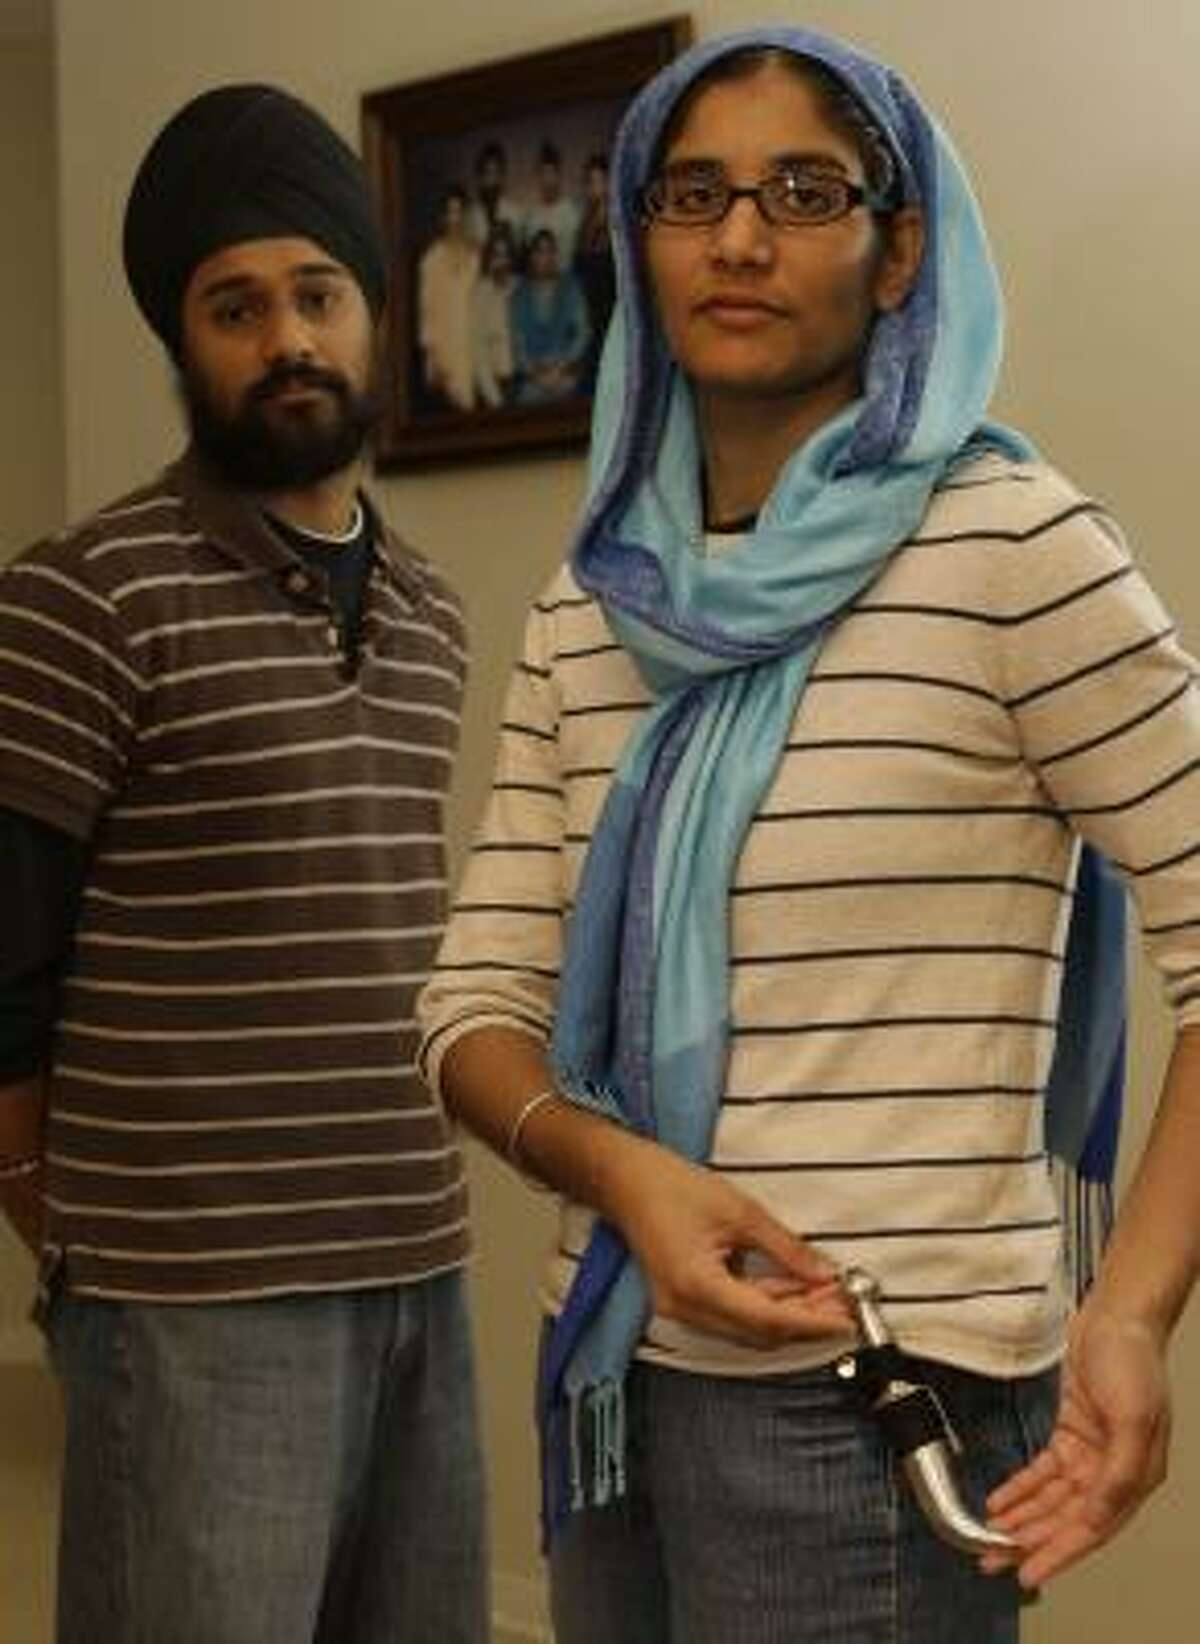 Kawaljeet Kaur, with her brother, Ramandeep Singh, shows her Kirpan, a ceremonial dagger required by the Sikh faith. Deputies handcuffed family members after they reported a burglary at their home.